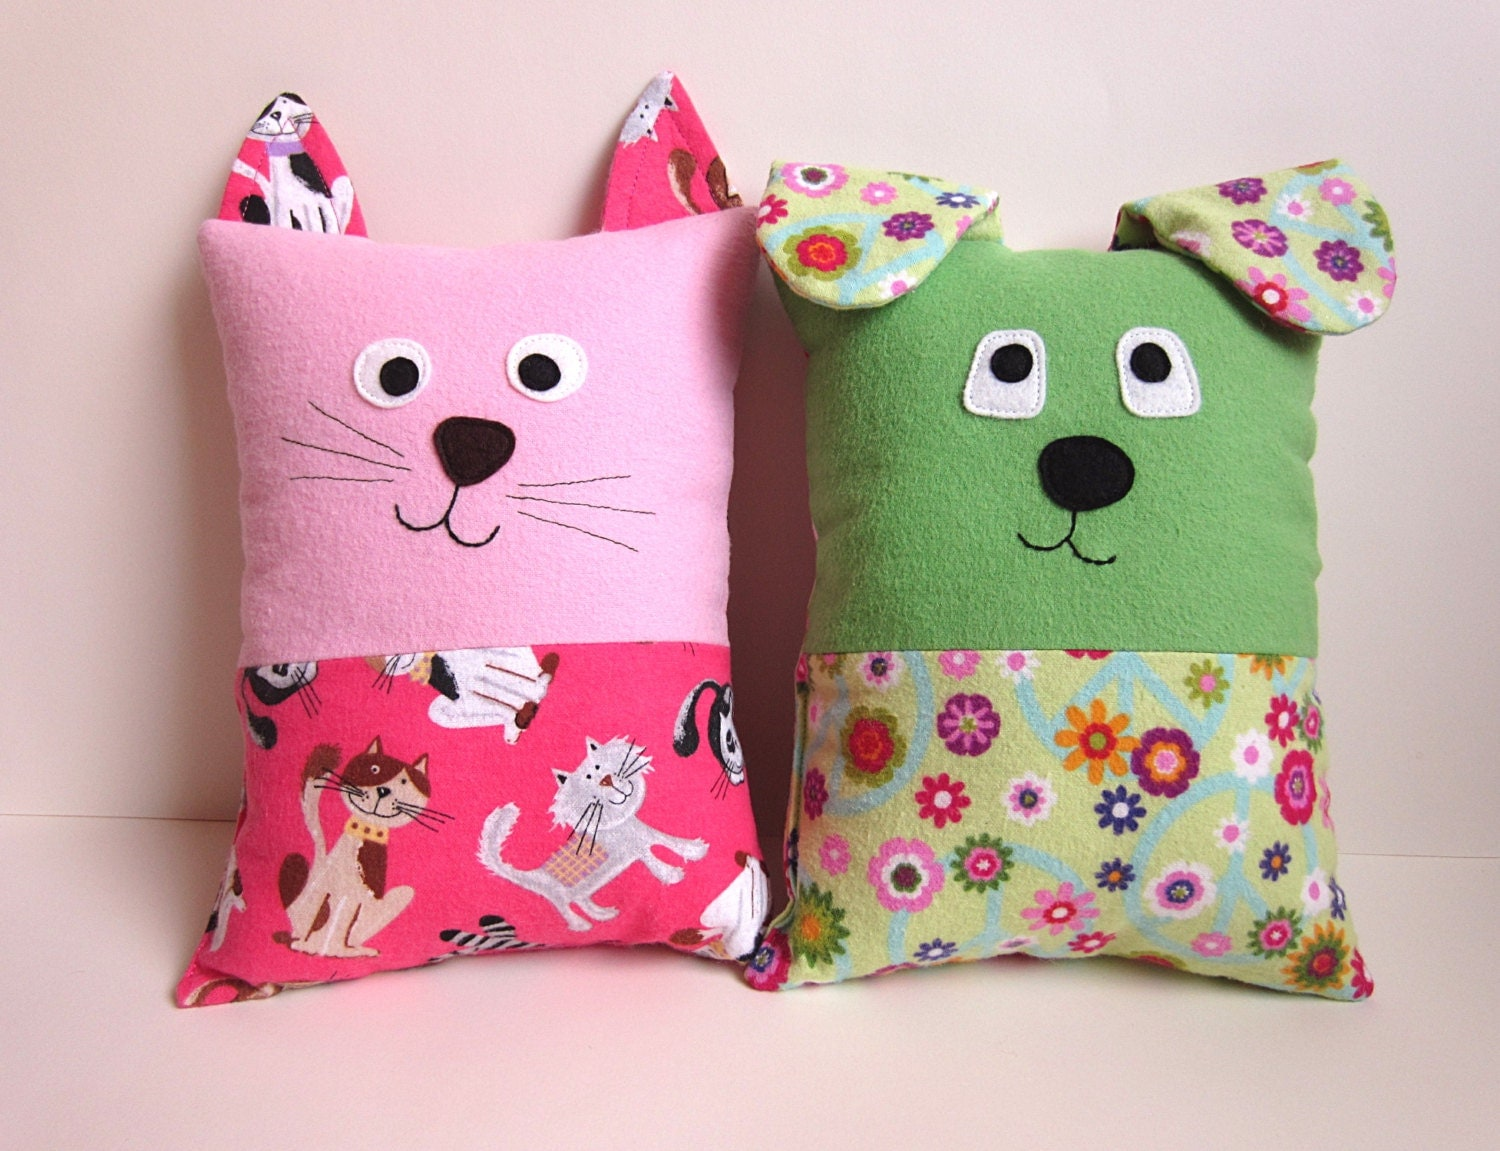 Dog cat pillow pattern tutorial pdf sewing pattern with Pillow design ideas